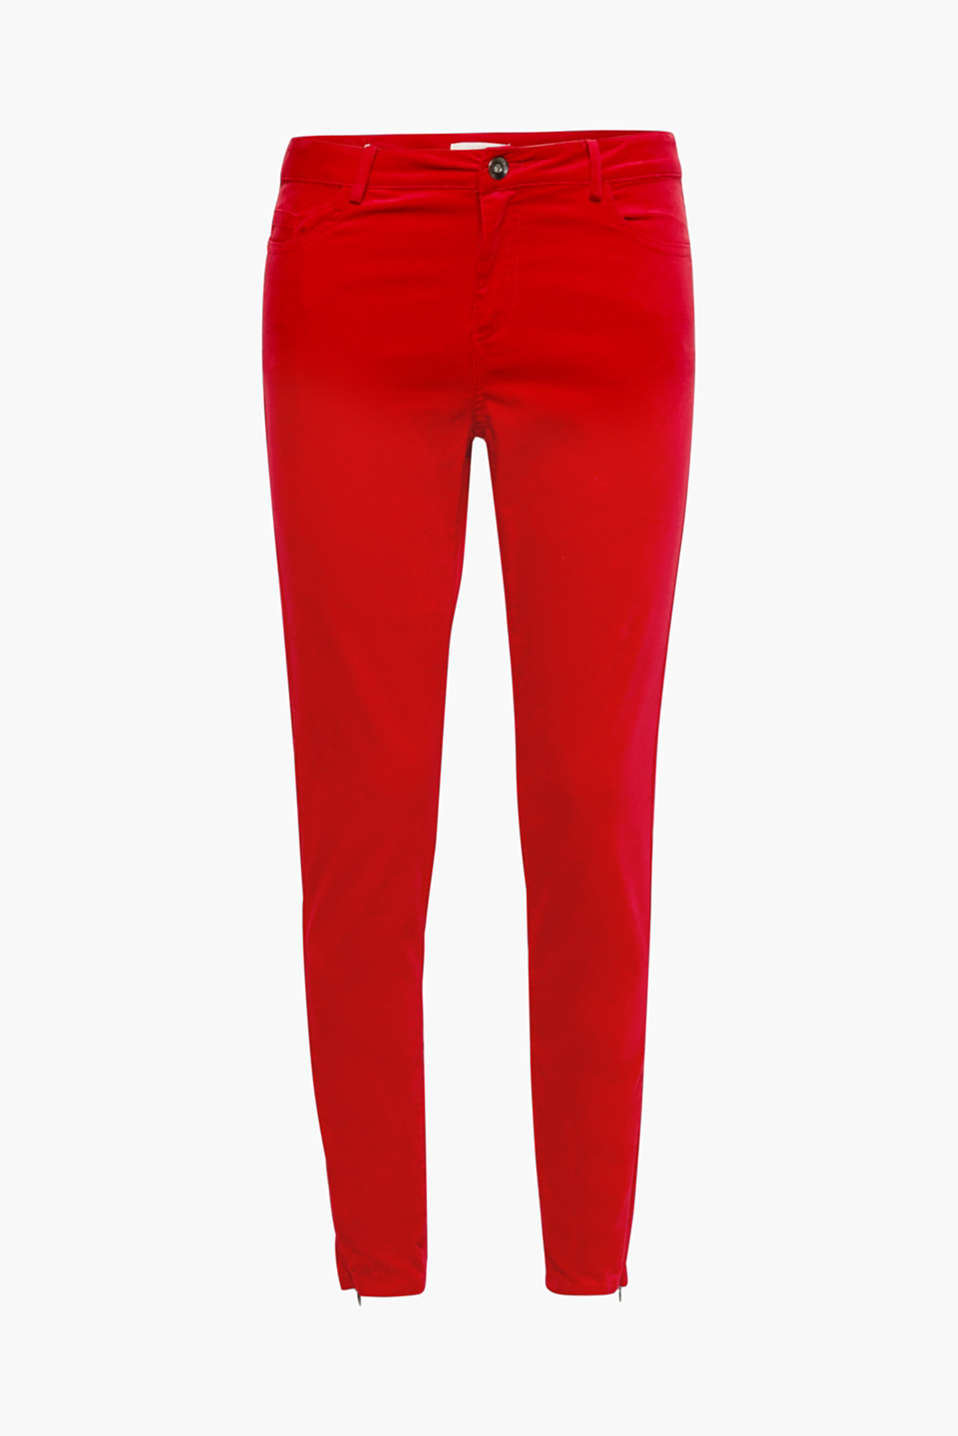 Exquisite velvet meets sporty five pockets on these stretchy trousers. Additional feature: the hem zips at the sides!